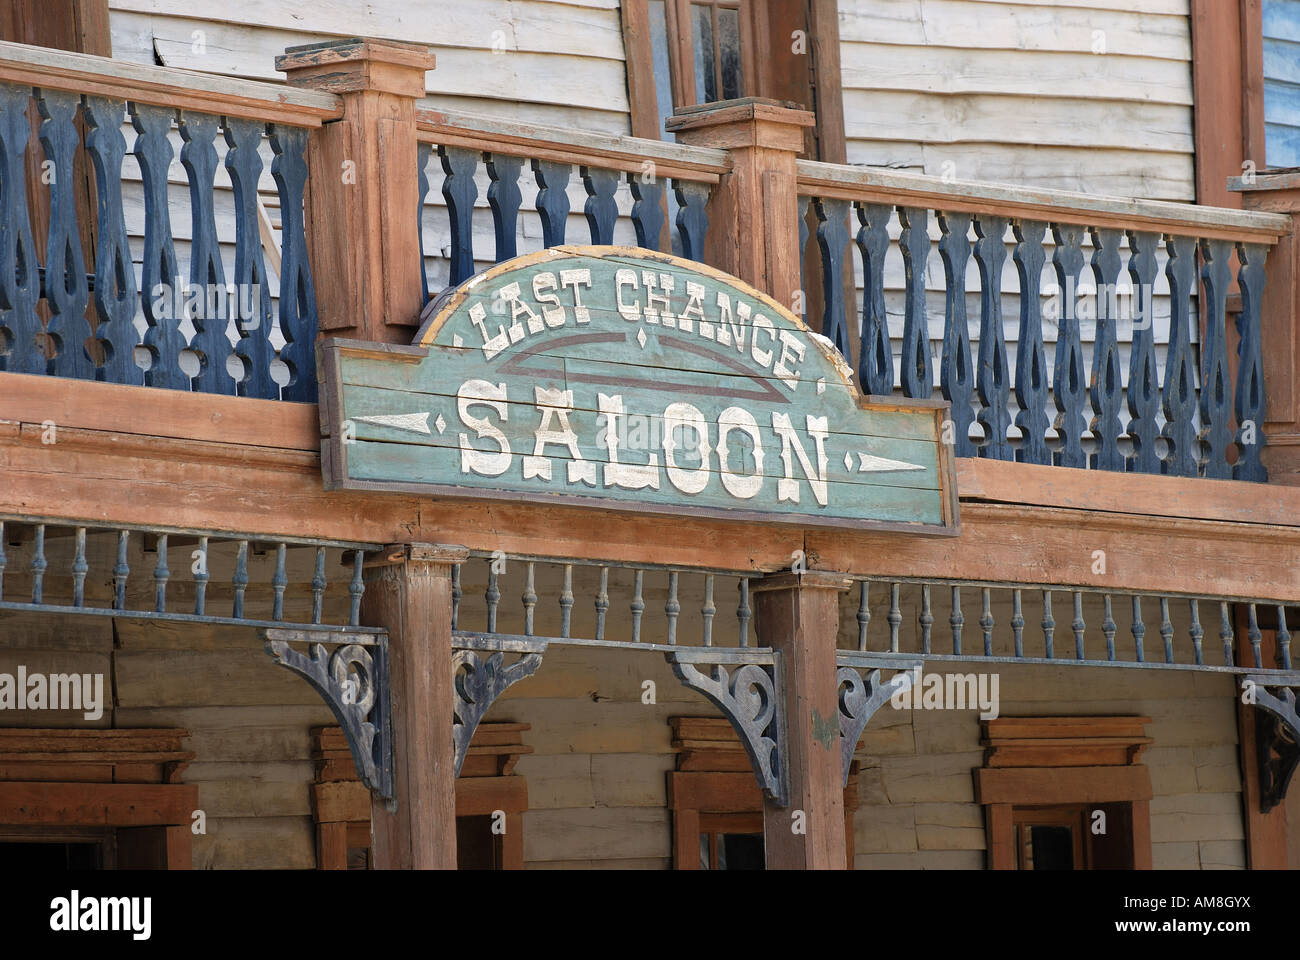 Last Chance Saloon in an old American Western style town Stock Photo